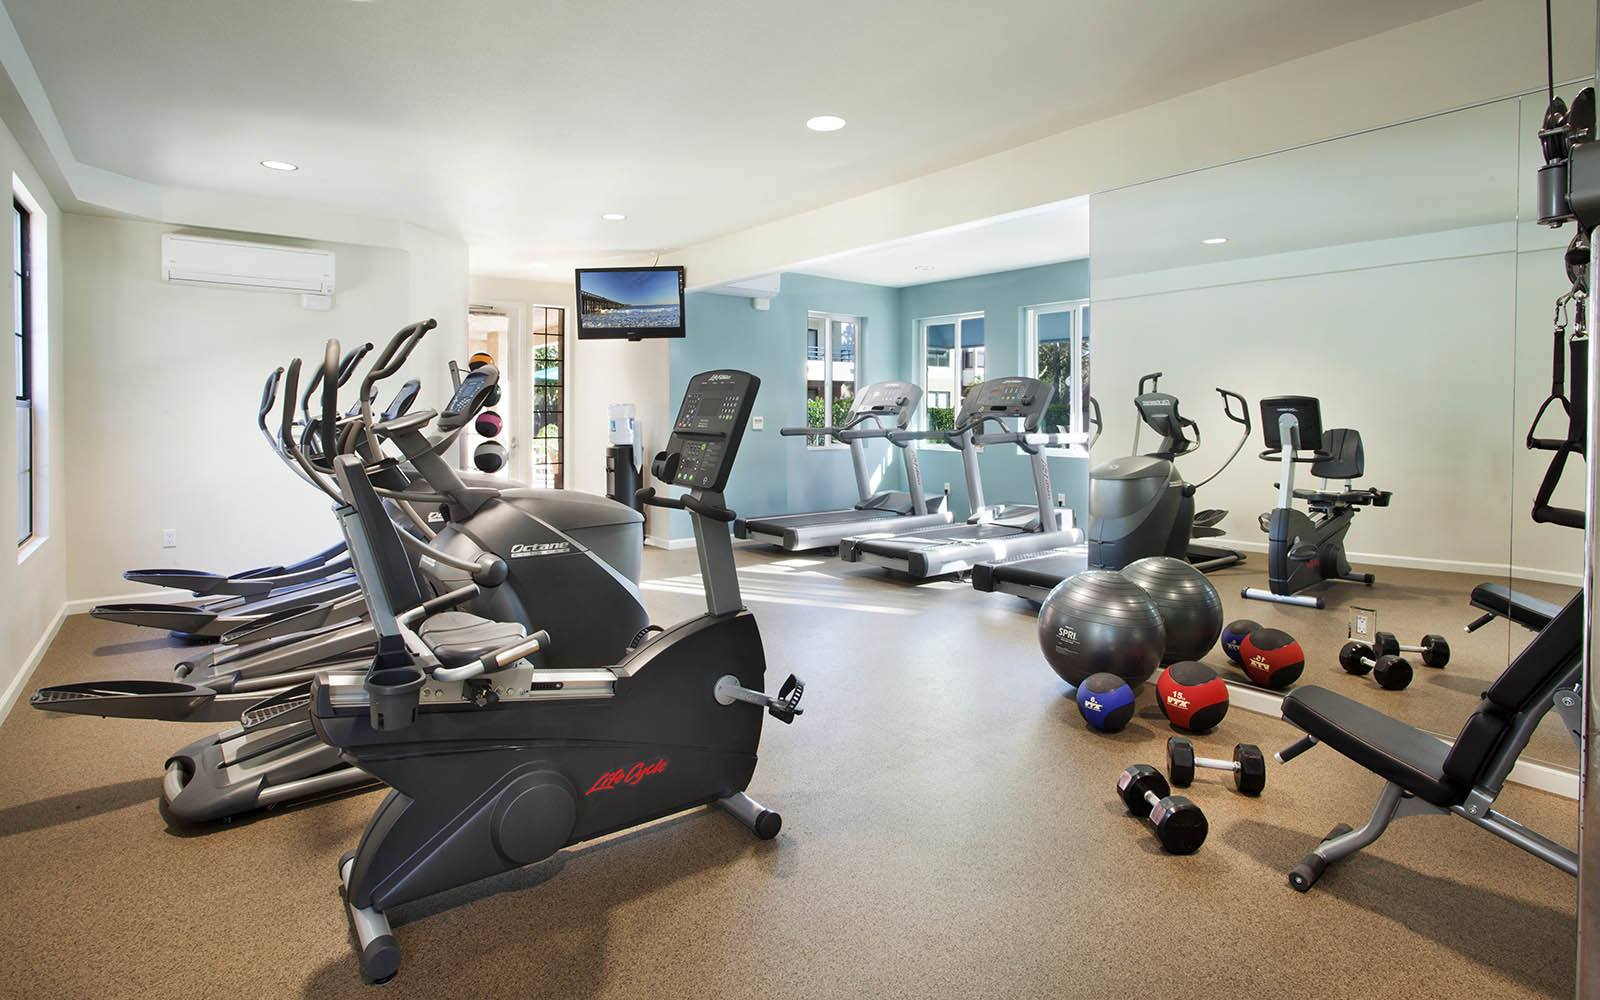 Cardio Equipment And Free Weights at Cypress Point Apartments in Ventura, CA